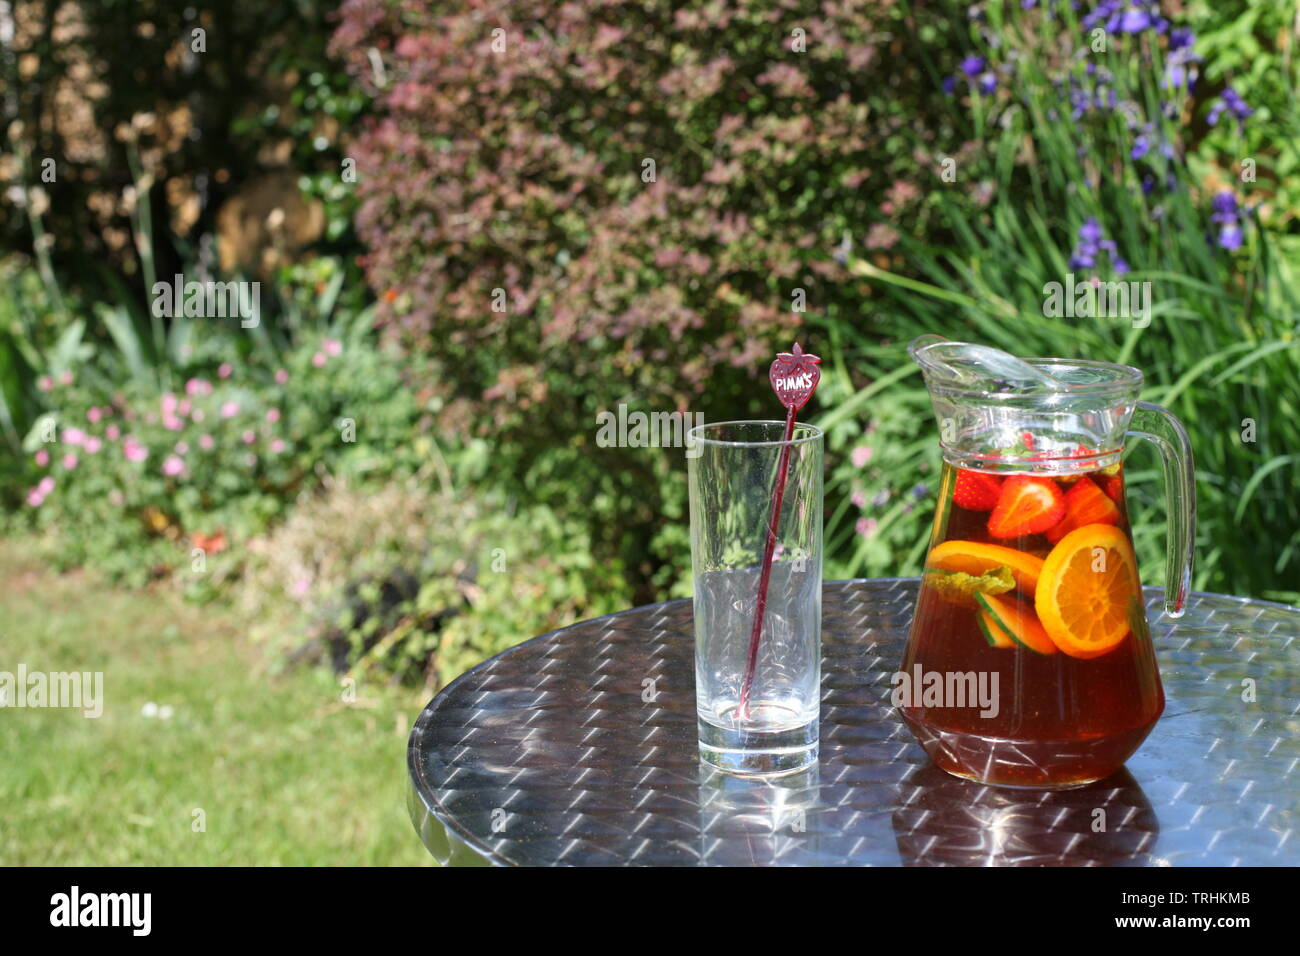 Pimms Oclock Banque D Image Et Photos Alamy